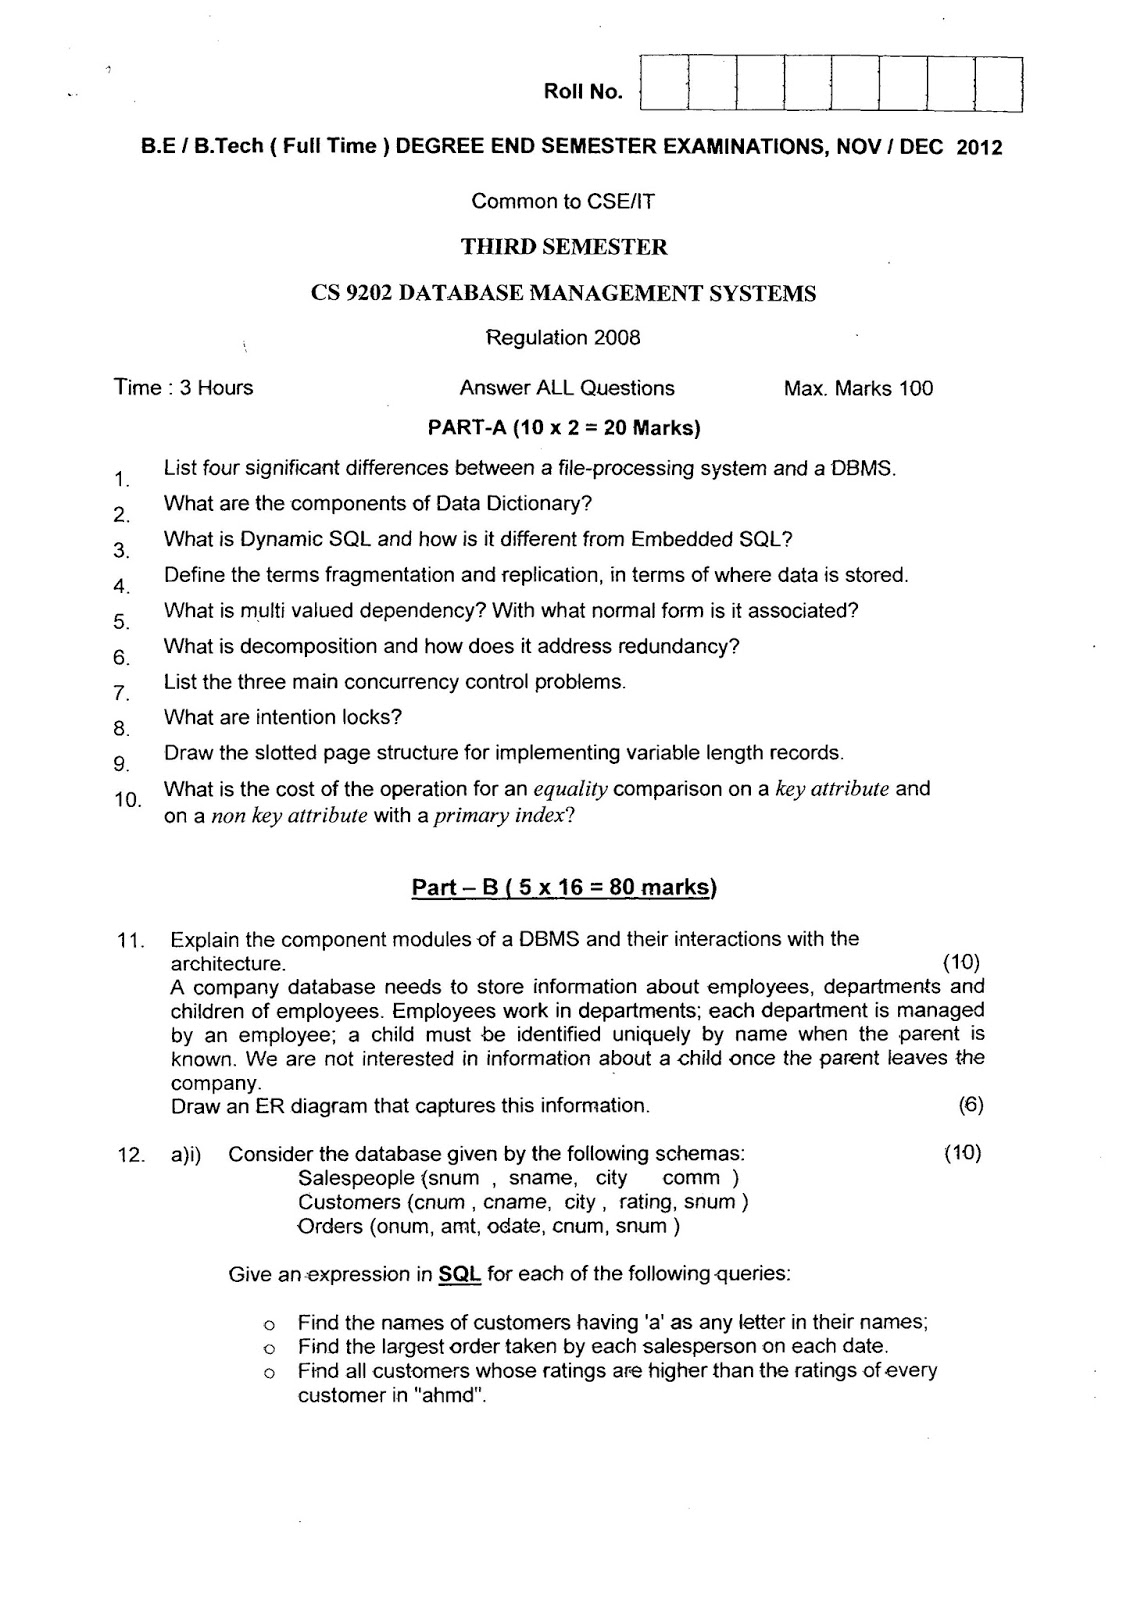 Advanced Database Management System Tutorials And Notes Cs9202 Anna University Questions Systems November December 2012 Common To Be Btech Cse It